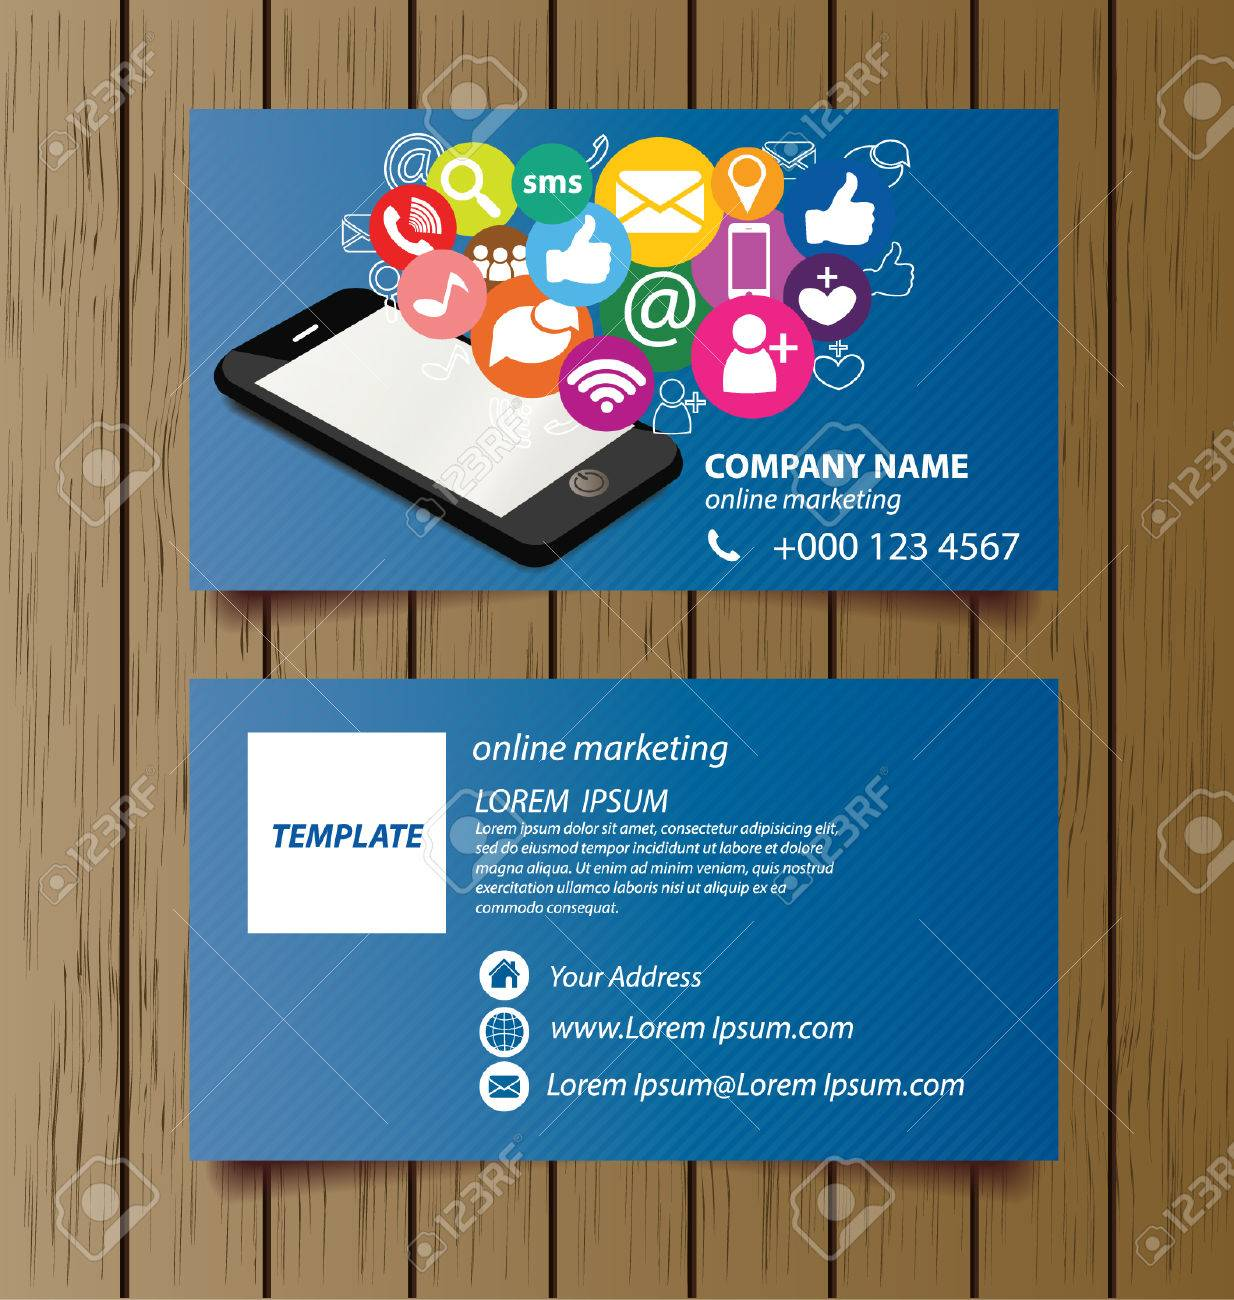 Business card template for online marketing vector royalty free business card template for online marketing vector stock vector 28388475 cheaphphosting Choice Image